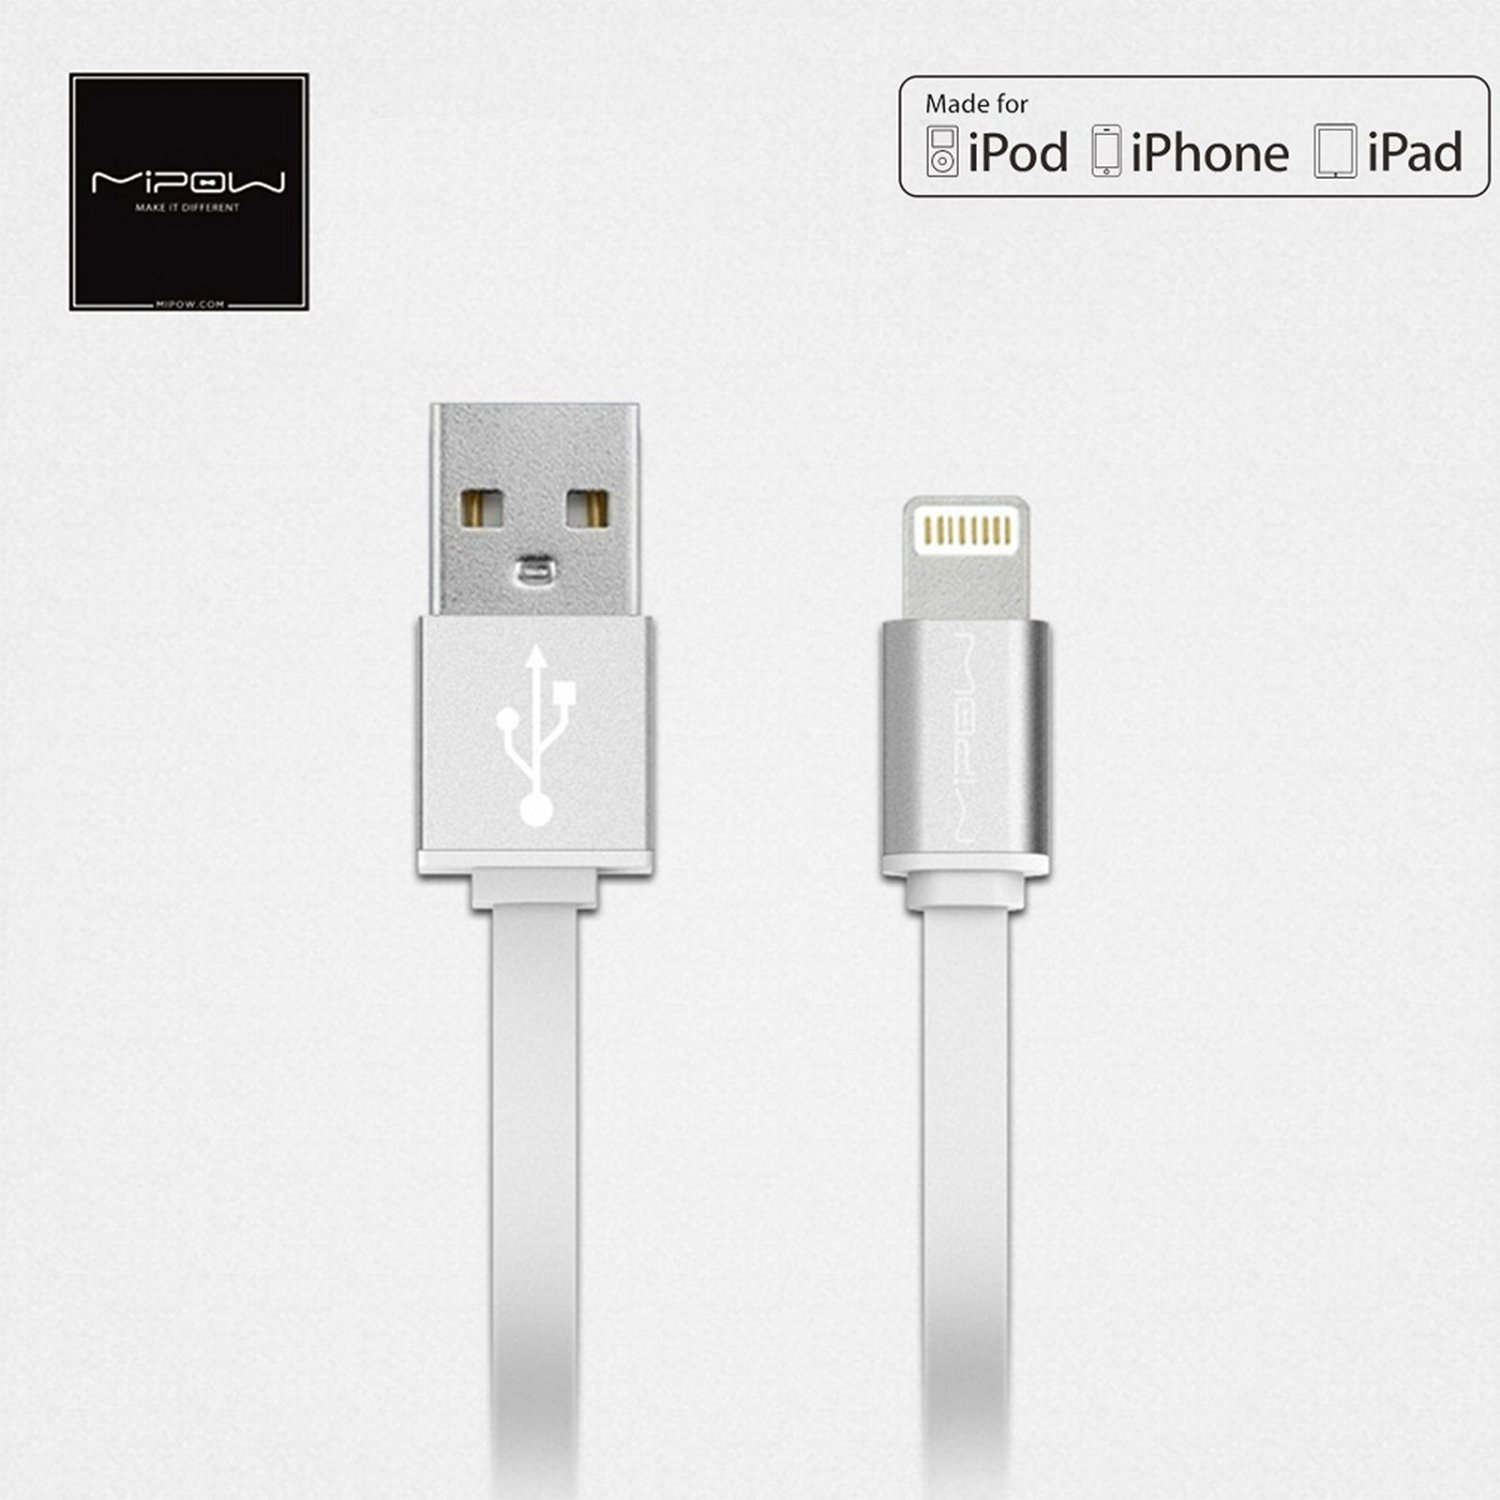 Charging Usb Code Cable Wiring Color Electrical Diagrams Cheap Iphone Find Diagram